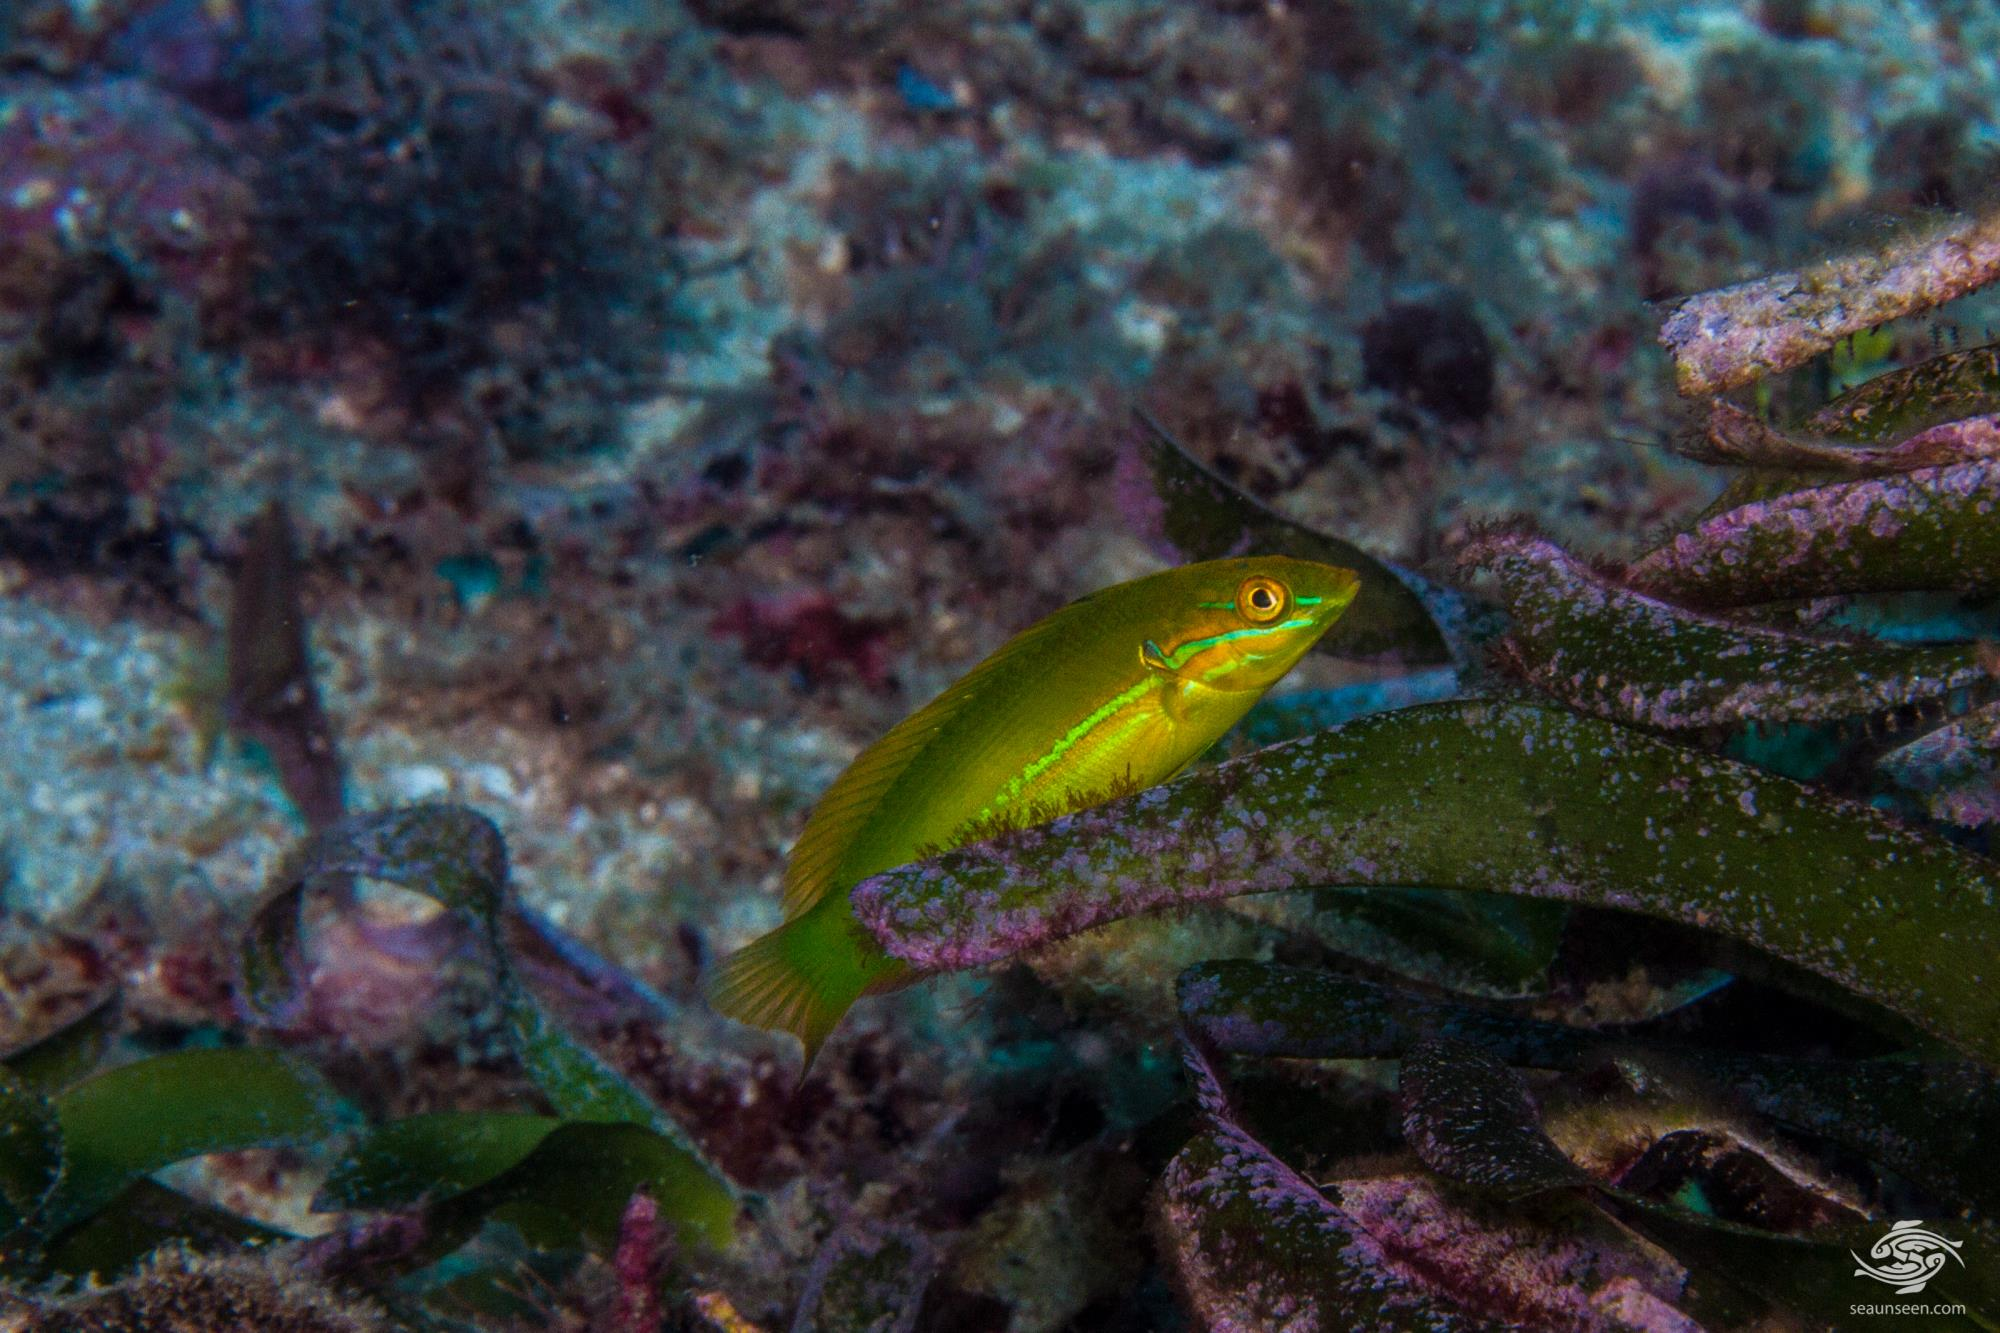 Possible color variation of Spot-tail Wrasse, Coris caudimacula or new species